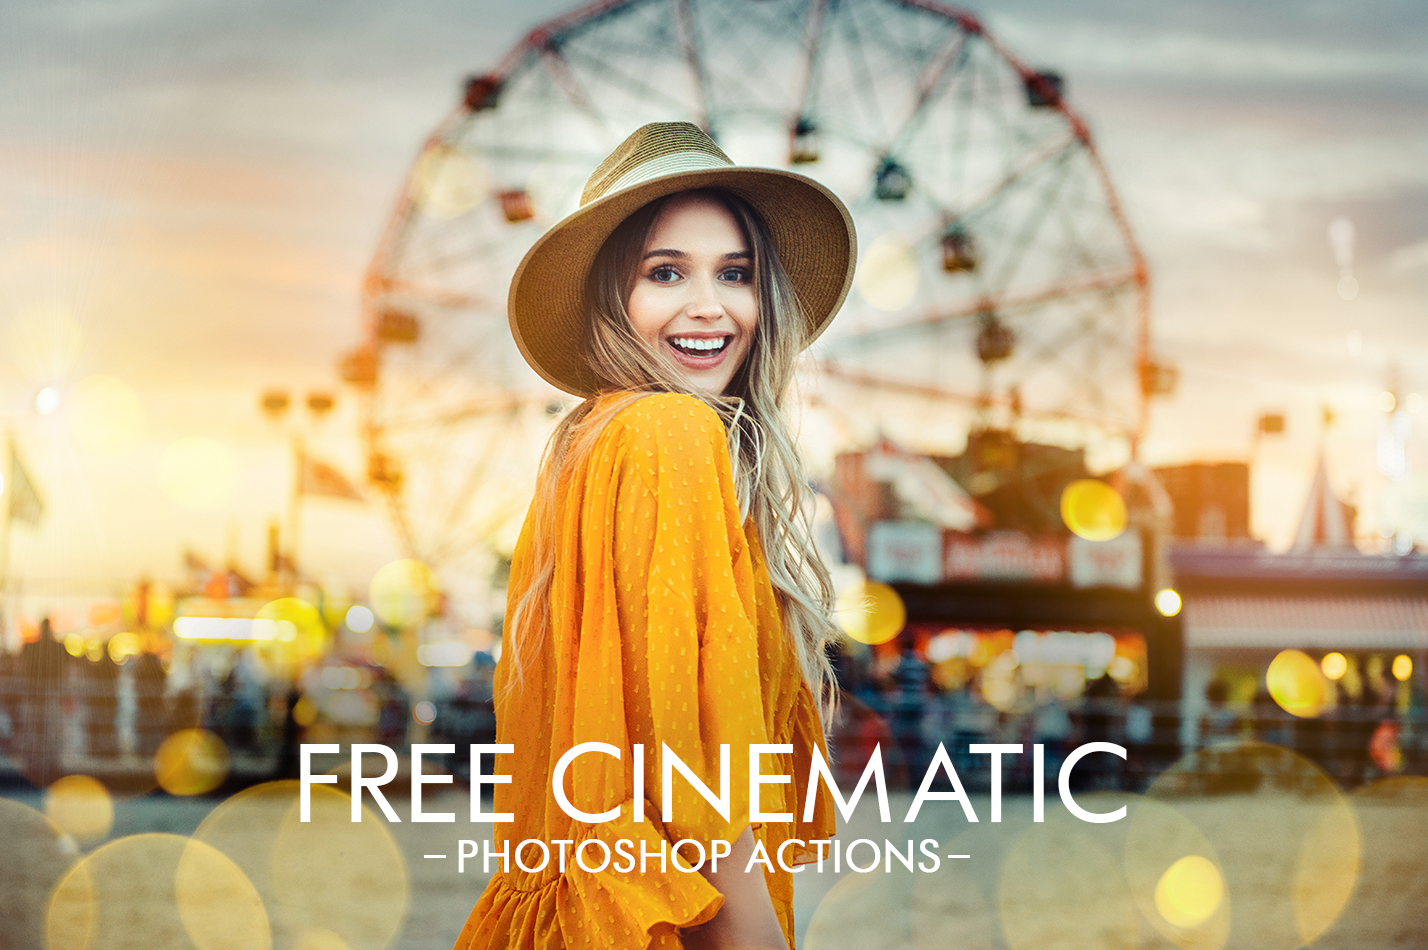 VSCO Actions Photoshop - Cinematic Look Photoshop Action Collection